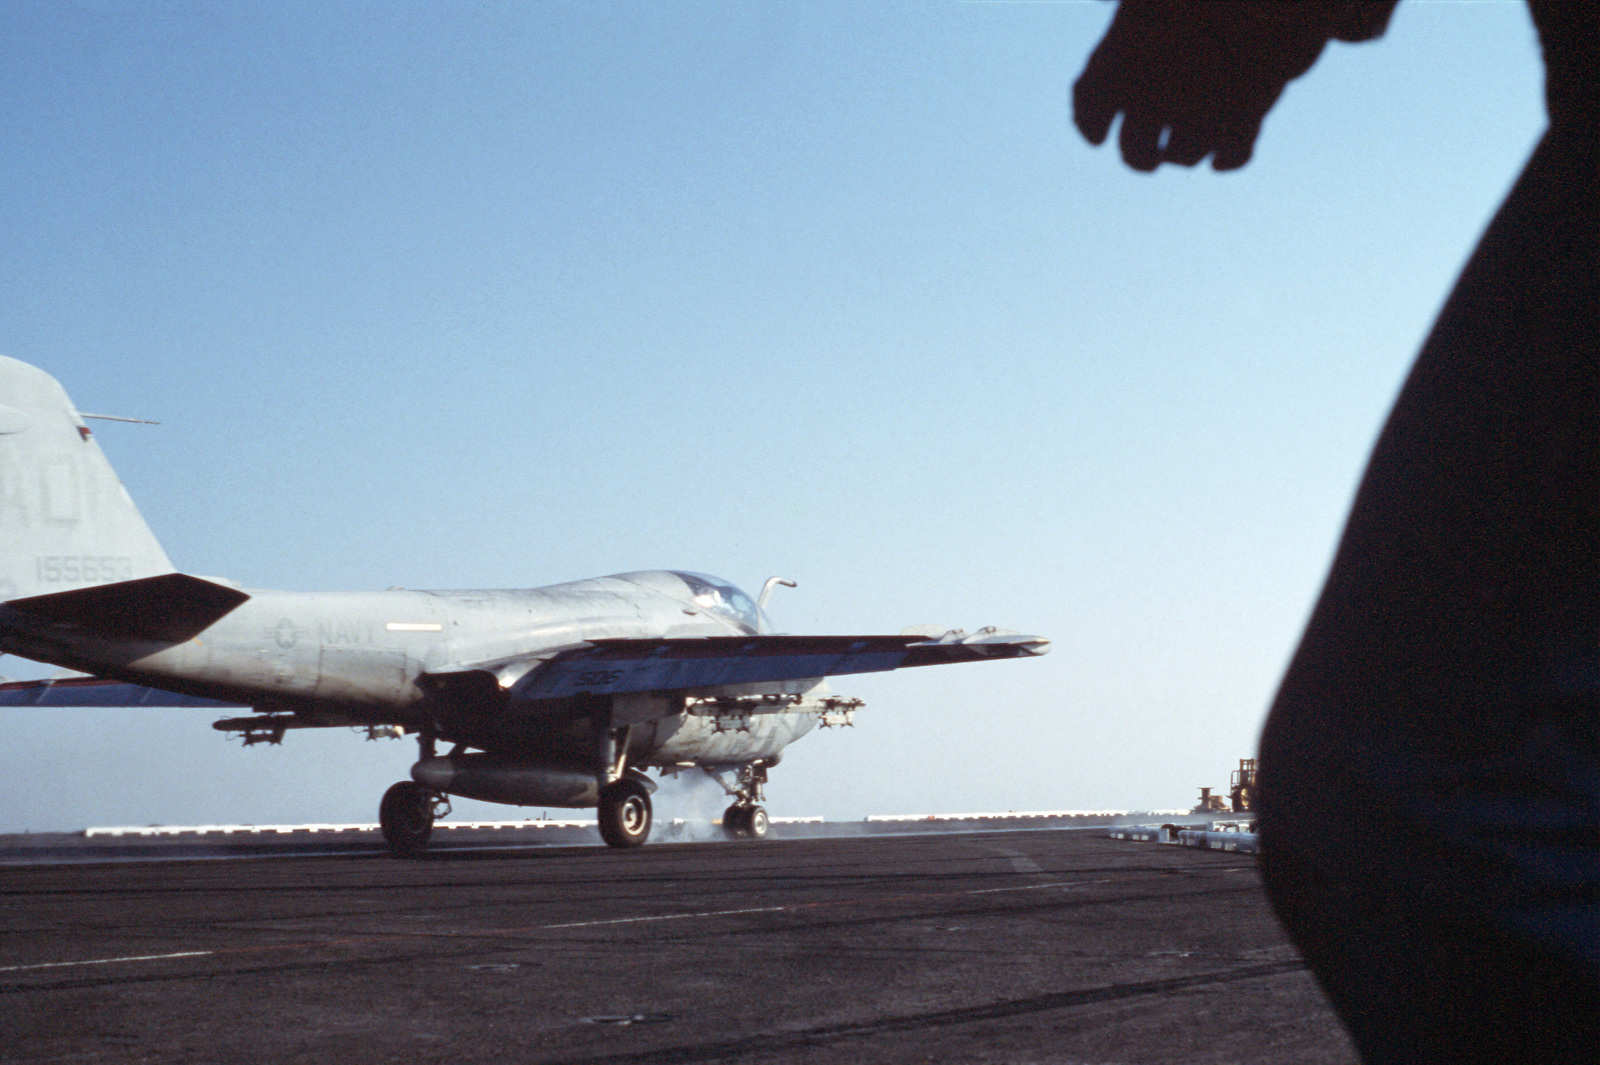 A Strike-Fighter Squadron 111 (VFA-111) A-6E Intruder aircraft lands aboard the nuclear-powered aircraft carrier USS DWIGHT D. EISENHOWER (CVN 69). Note: Fifth view in a series of six